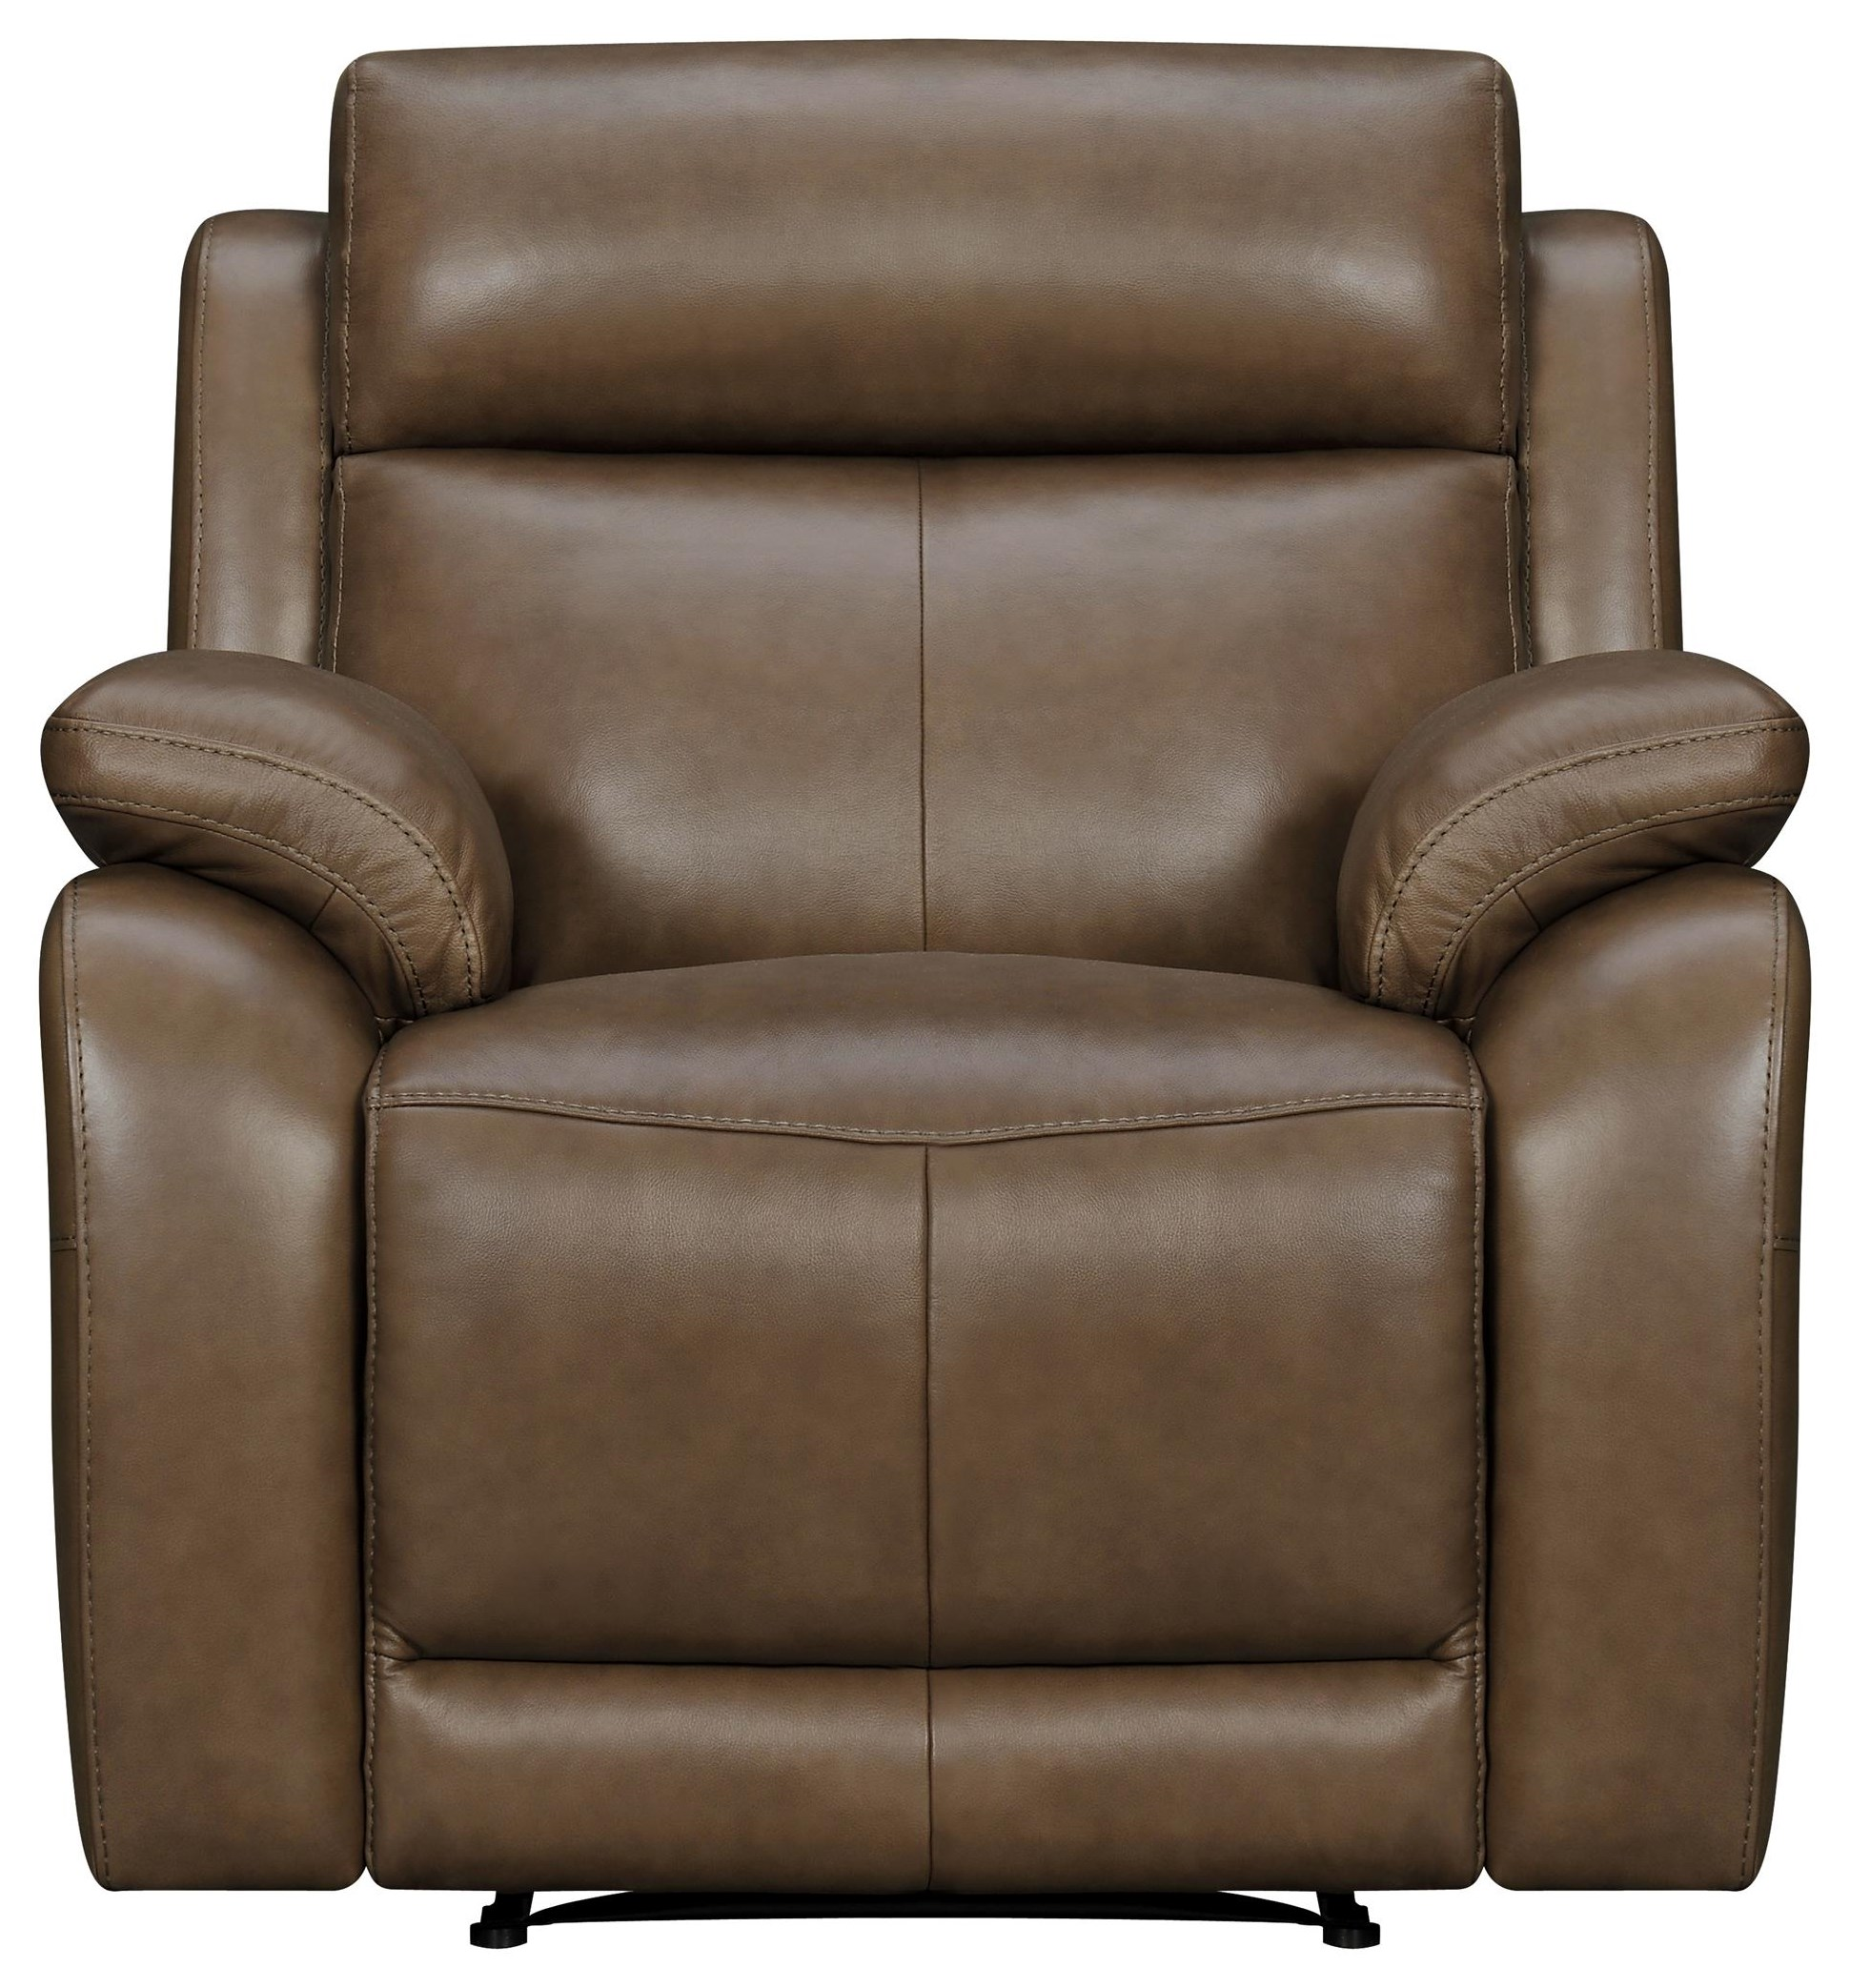 32956 Motion Chair at Bennett's Furniture and Mattresses